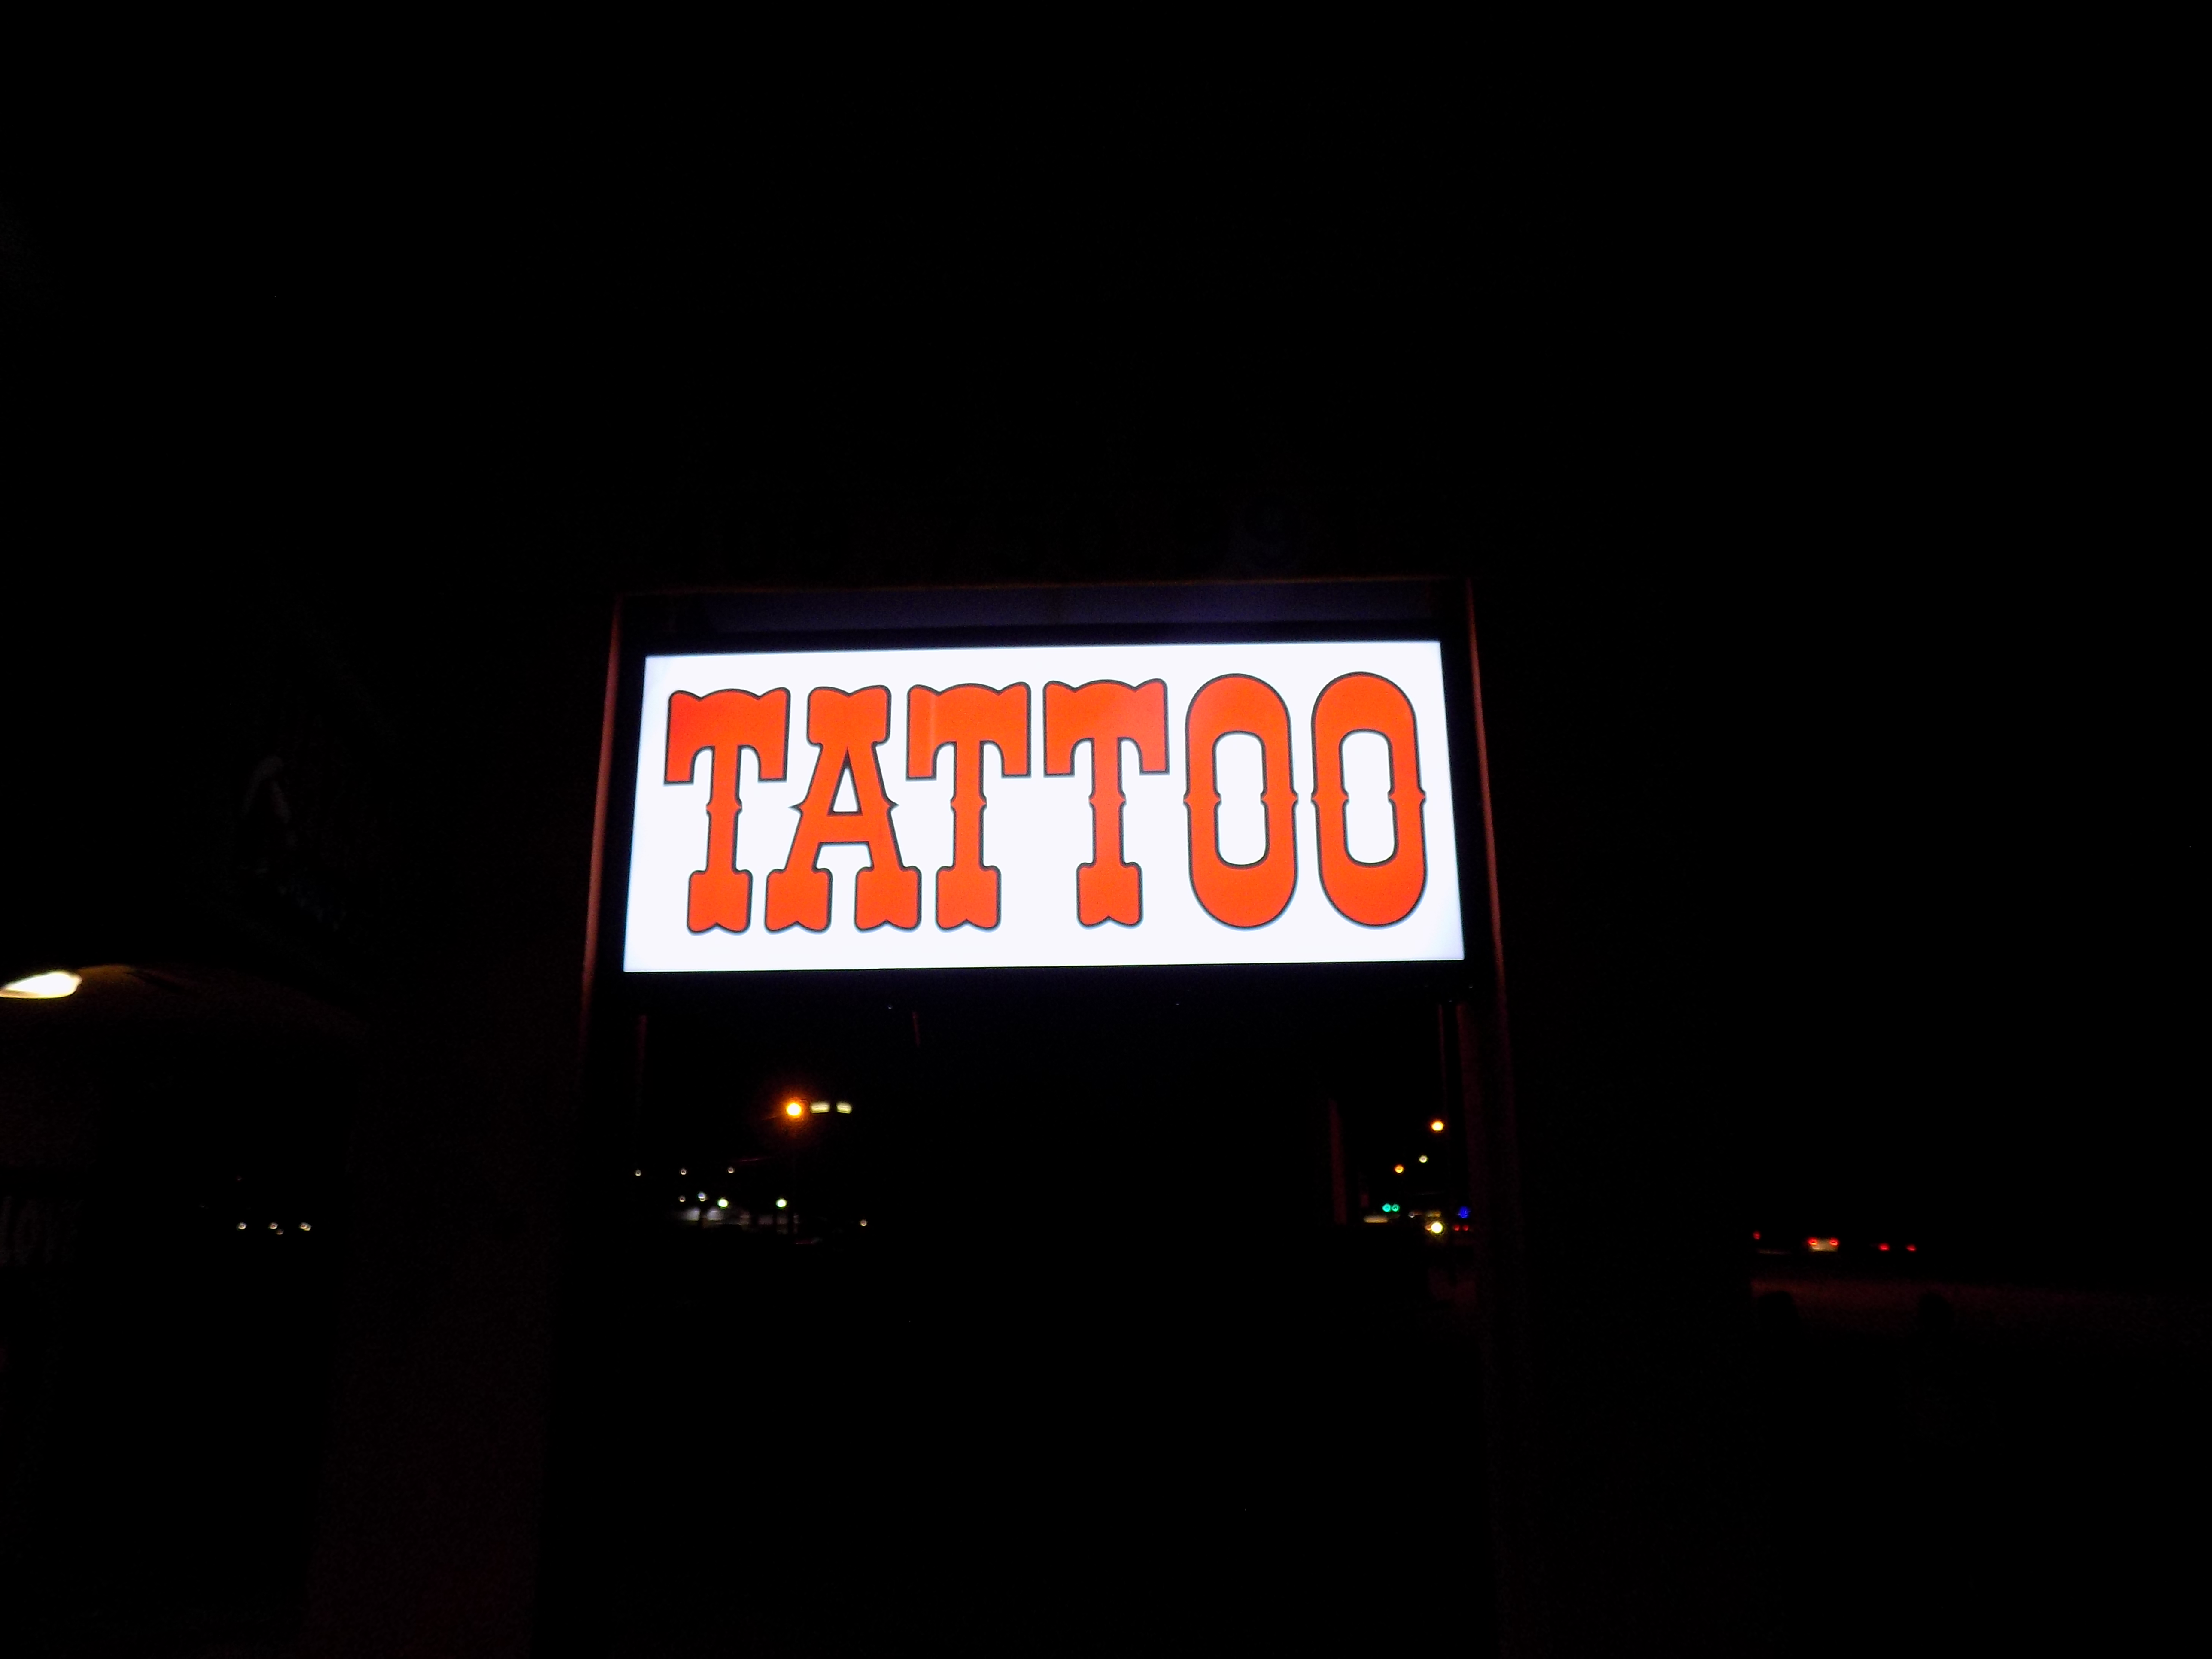 New Lit up sign